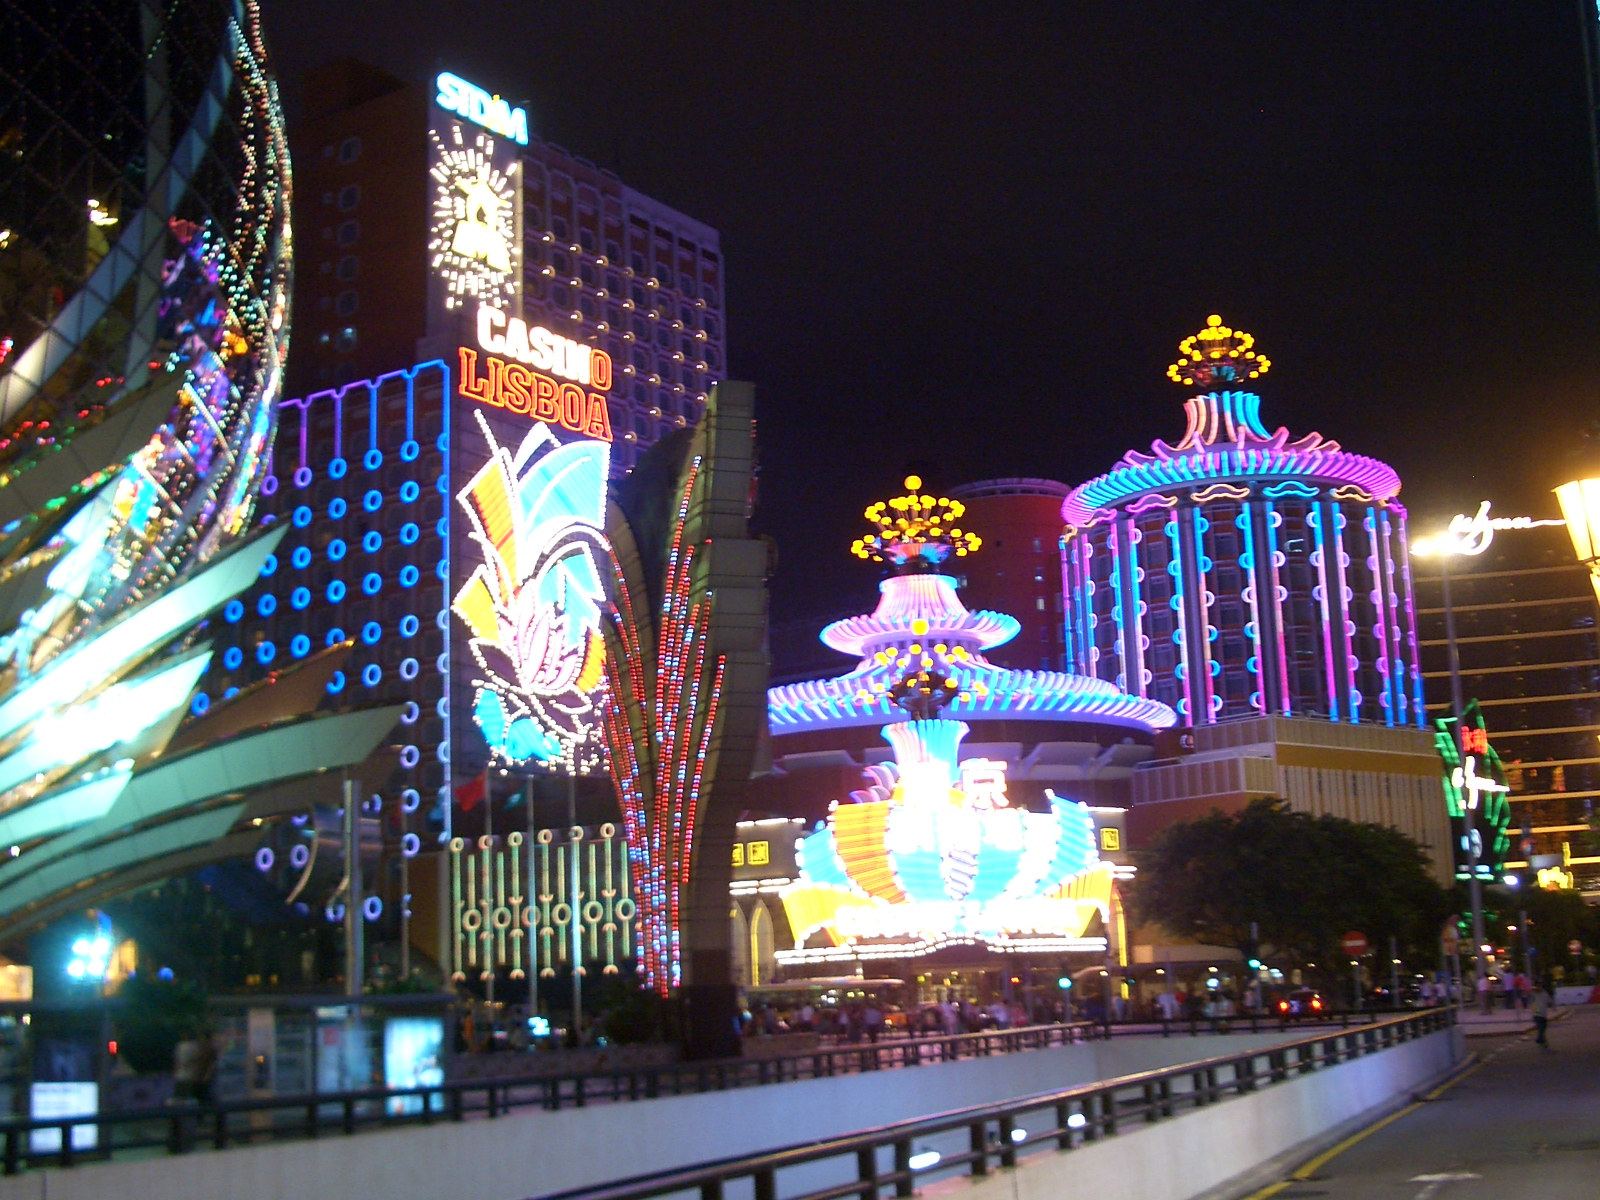 Casino at Venetian Macao, Macau: Hours, Address, Casino at Venetian Macao Reviews: 4/5